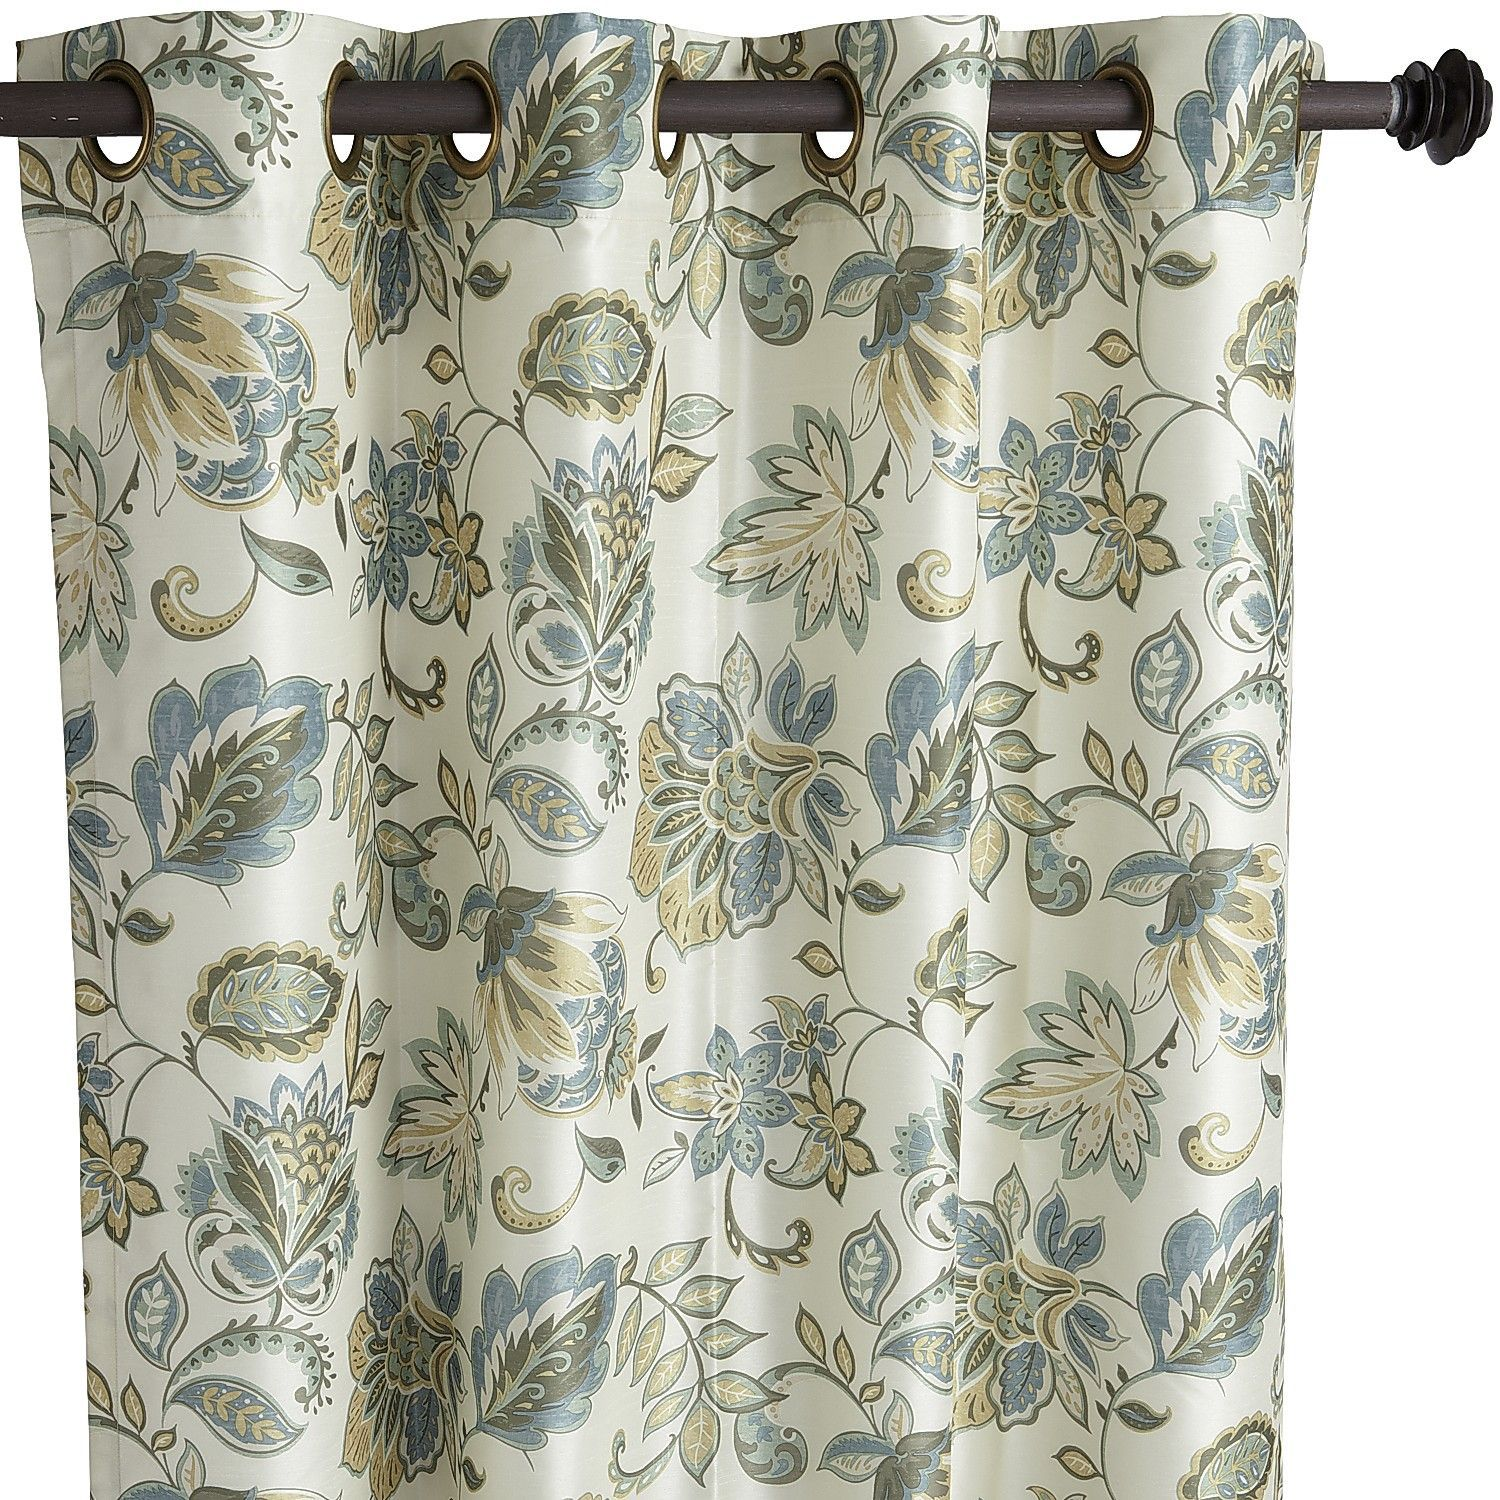 Glencove Floral Blue 84 Grommet Curtain Curtains Living RoomsDining